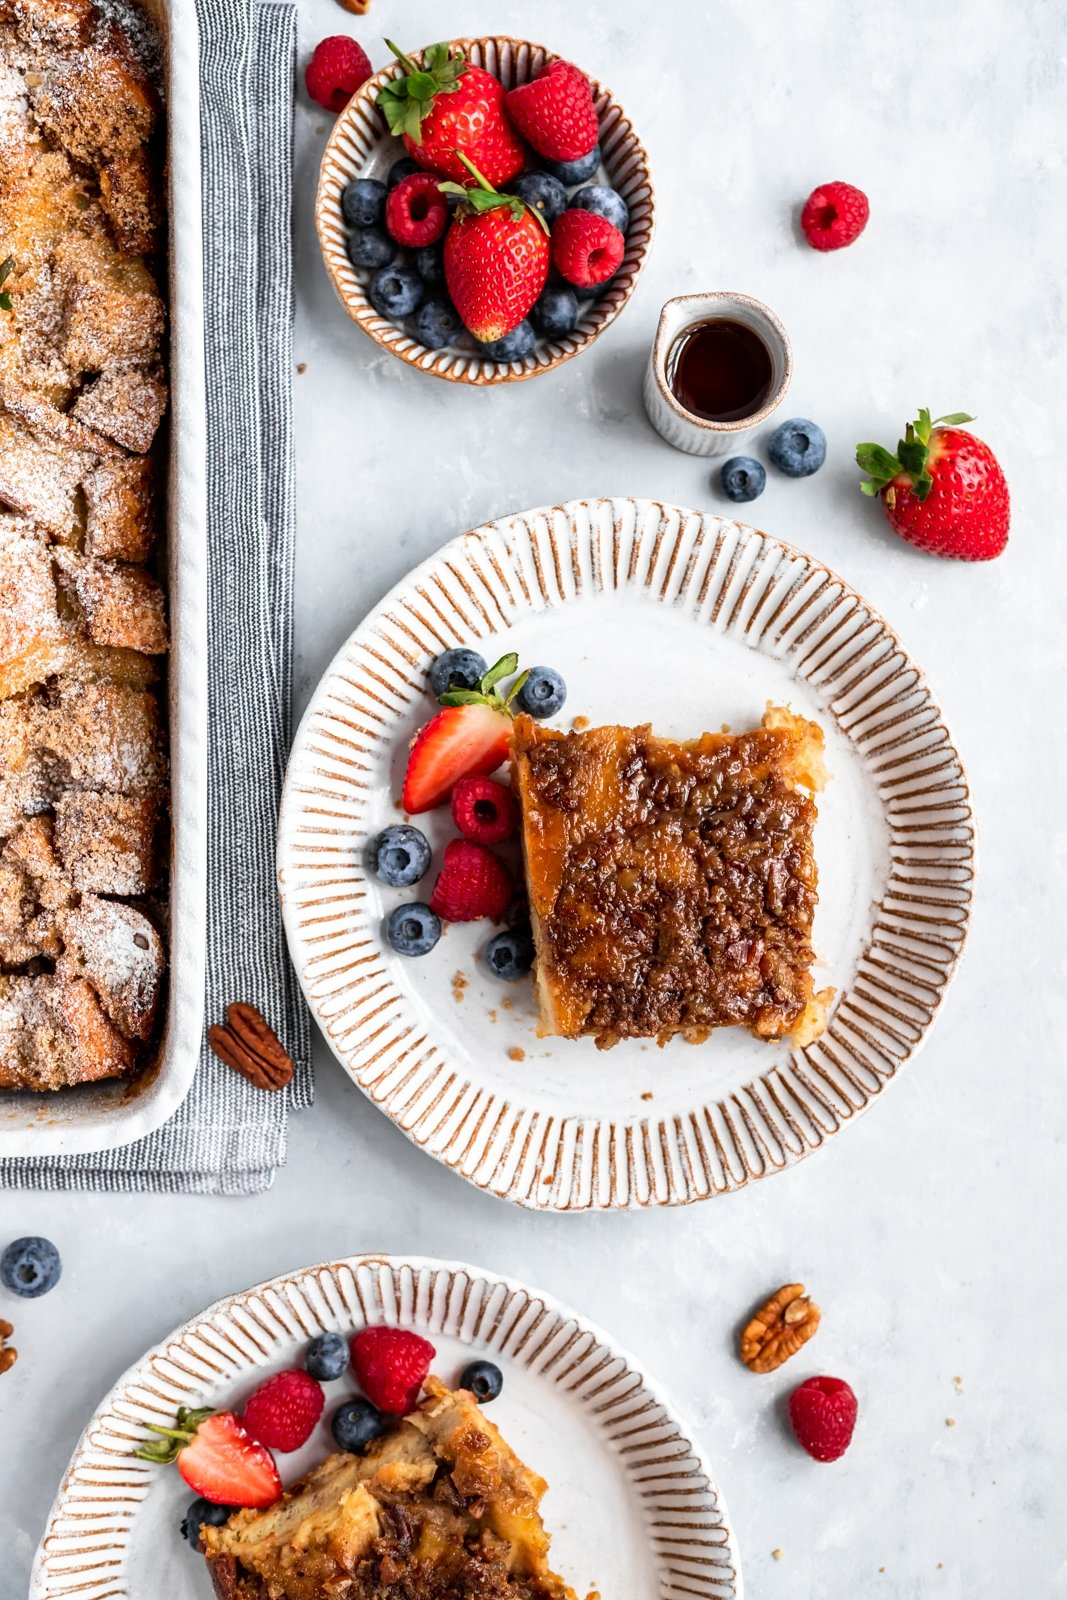 overnight french toast casserole on a plate with berries on the side